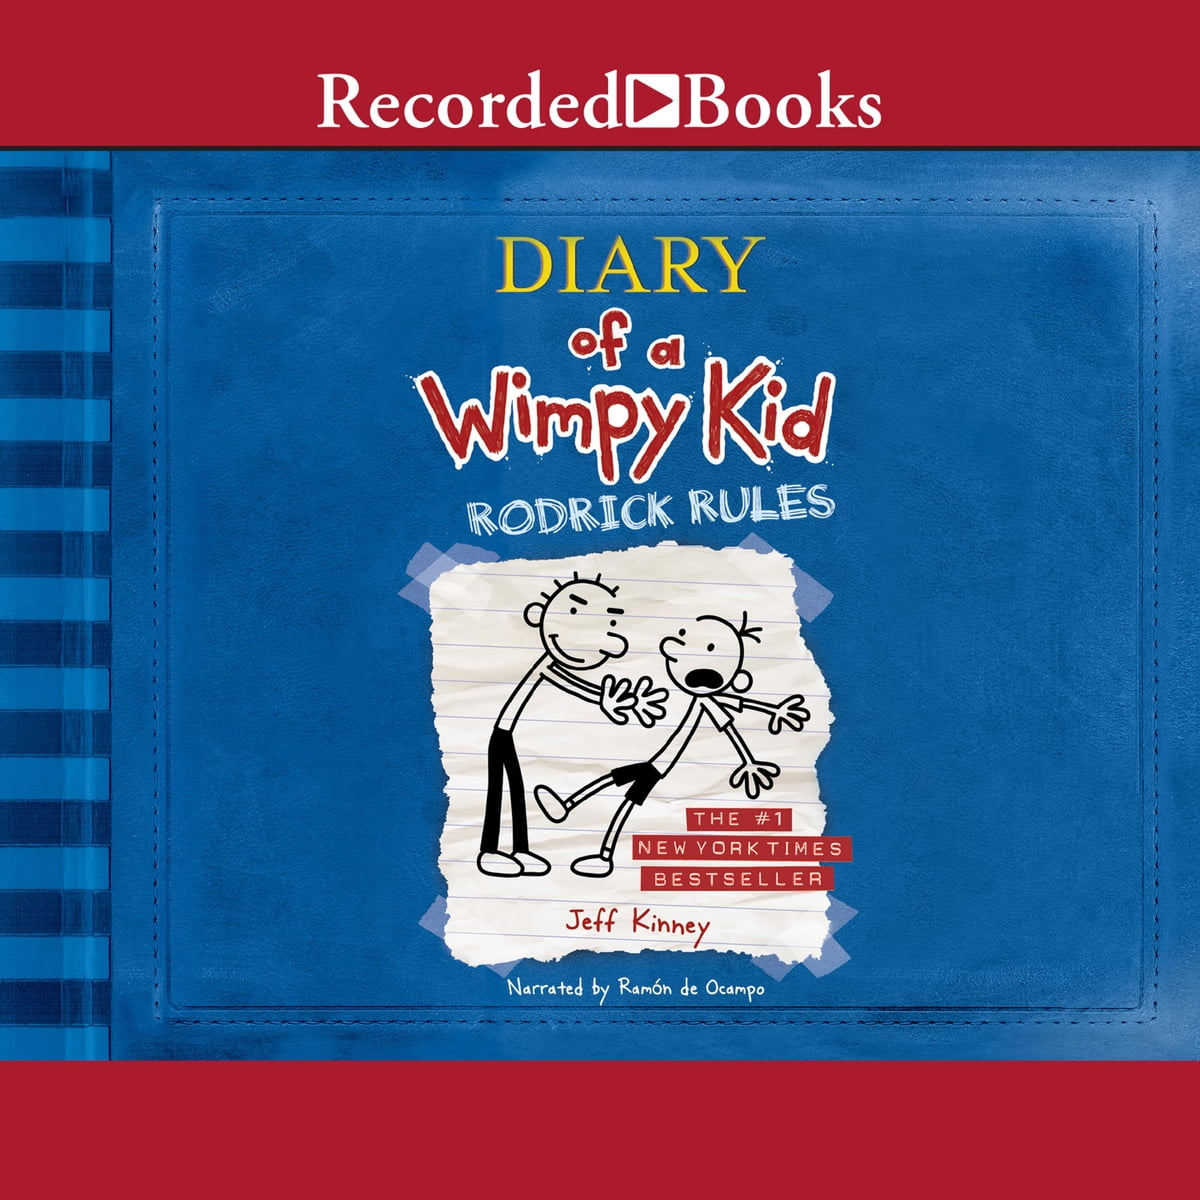 Diary Of A Wimpy Kid Rodrick Rules Audiobook By Jeff Kinney 9781440708862 Rakuten Kobo